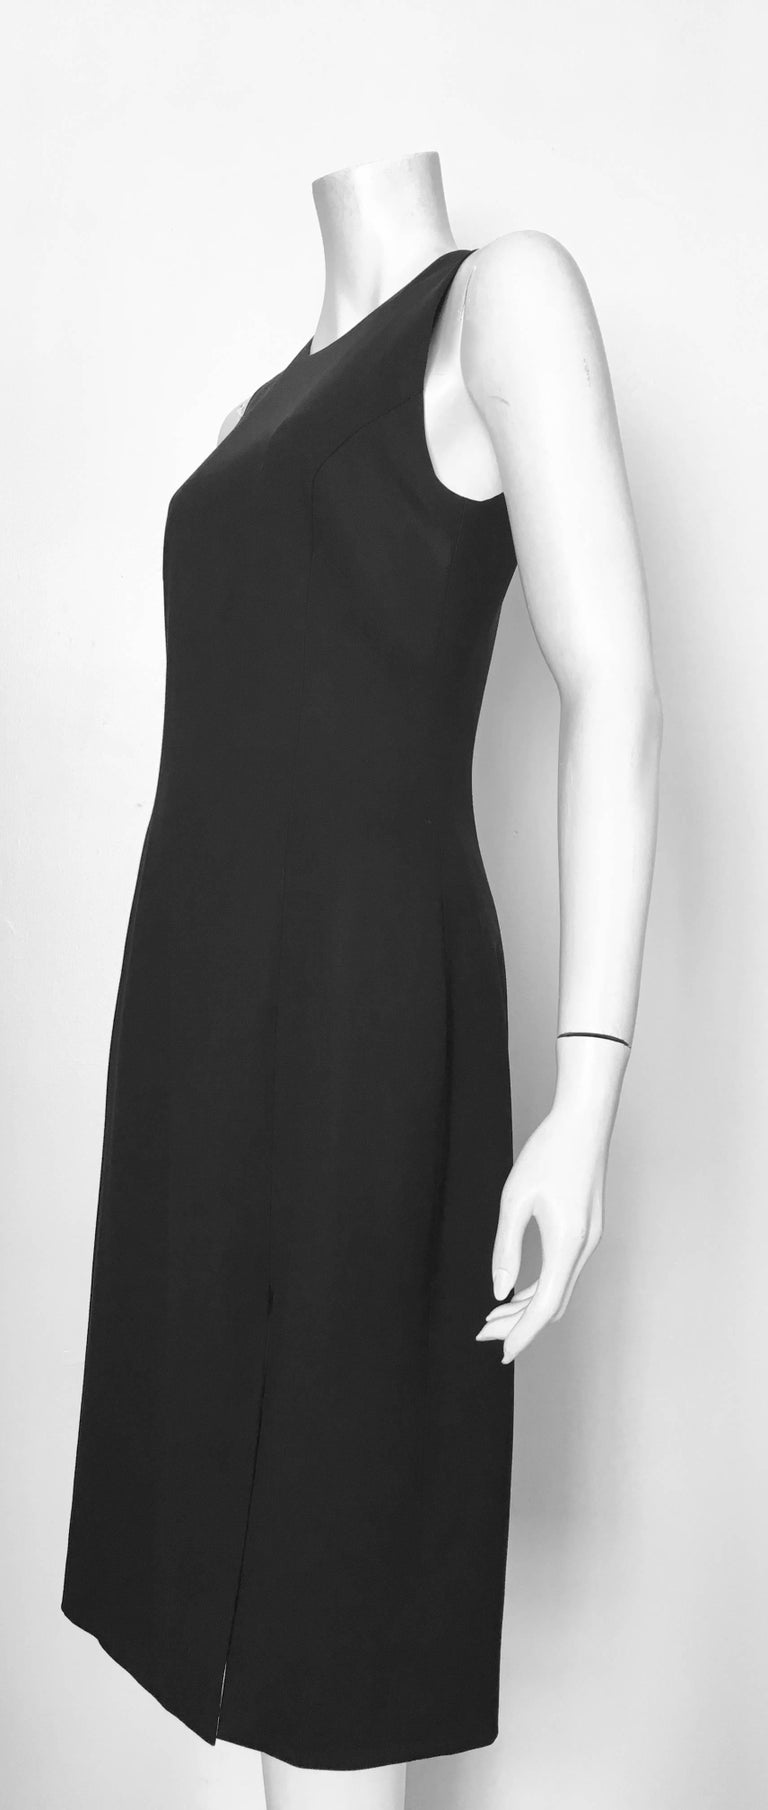 Cheap With Paypal Outlet Choice Versace Sleeveless Sheath Dress w/ Tags Newest Online MGpal